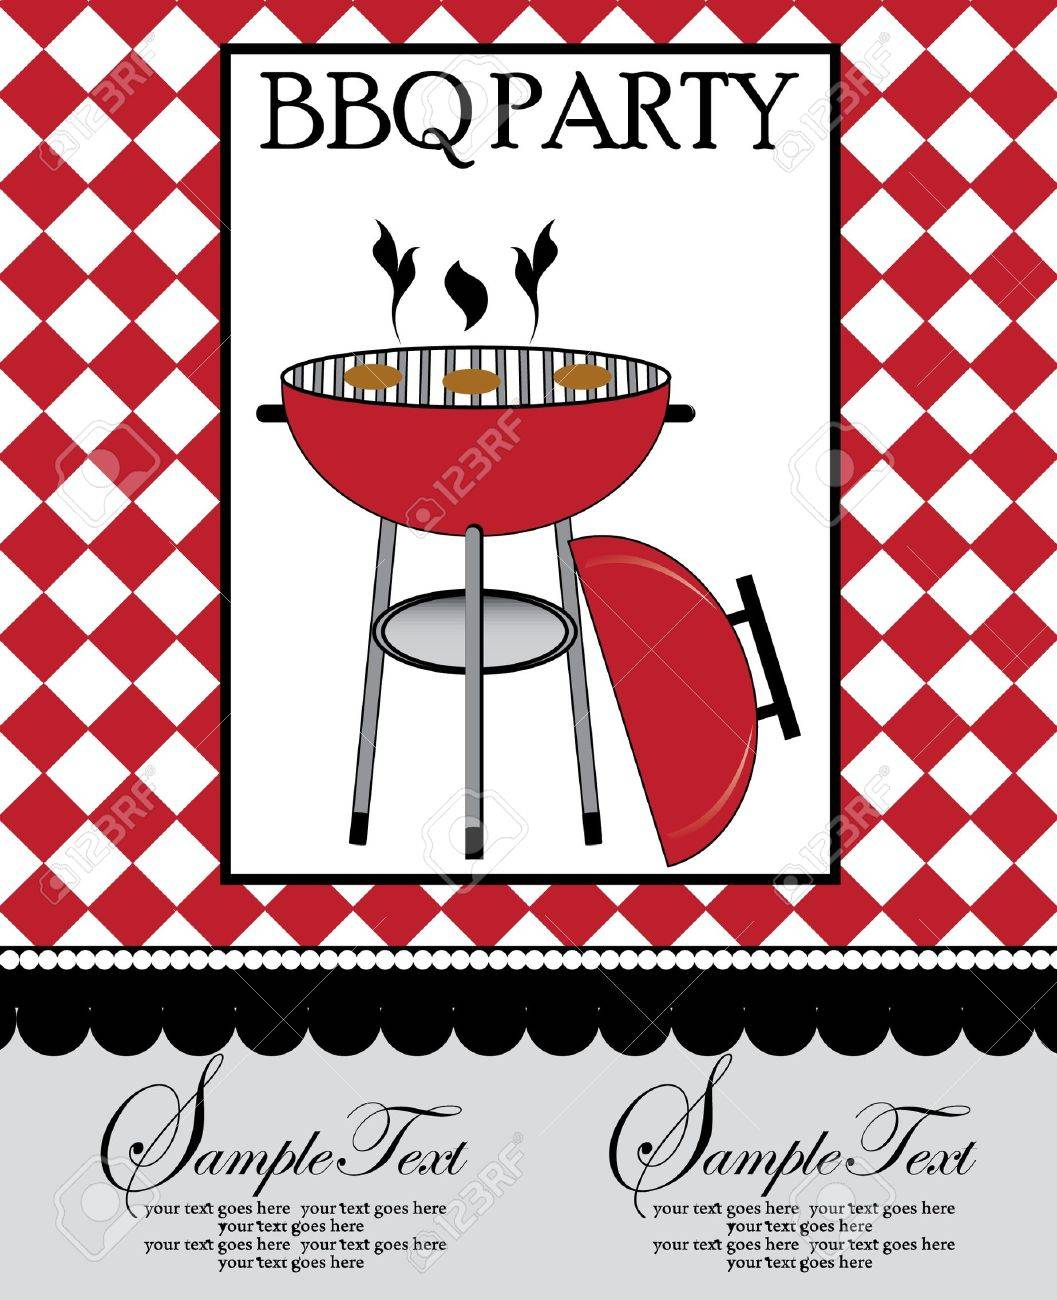 bbq party invitation royalty free cliparts vectors and stock